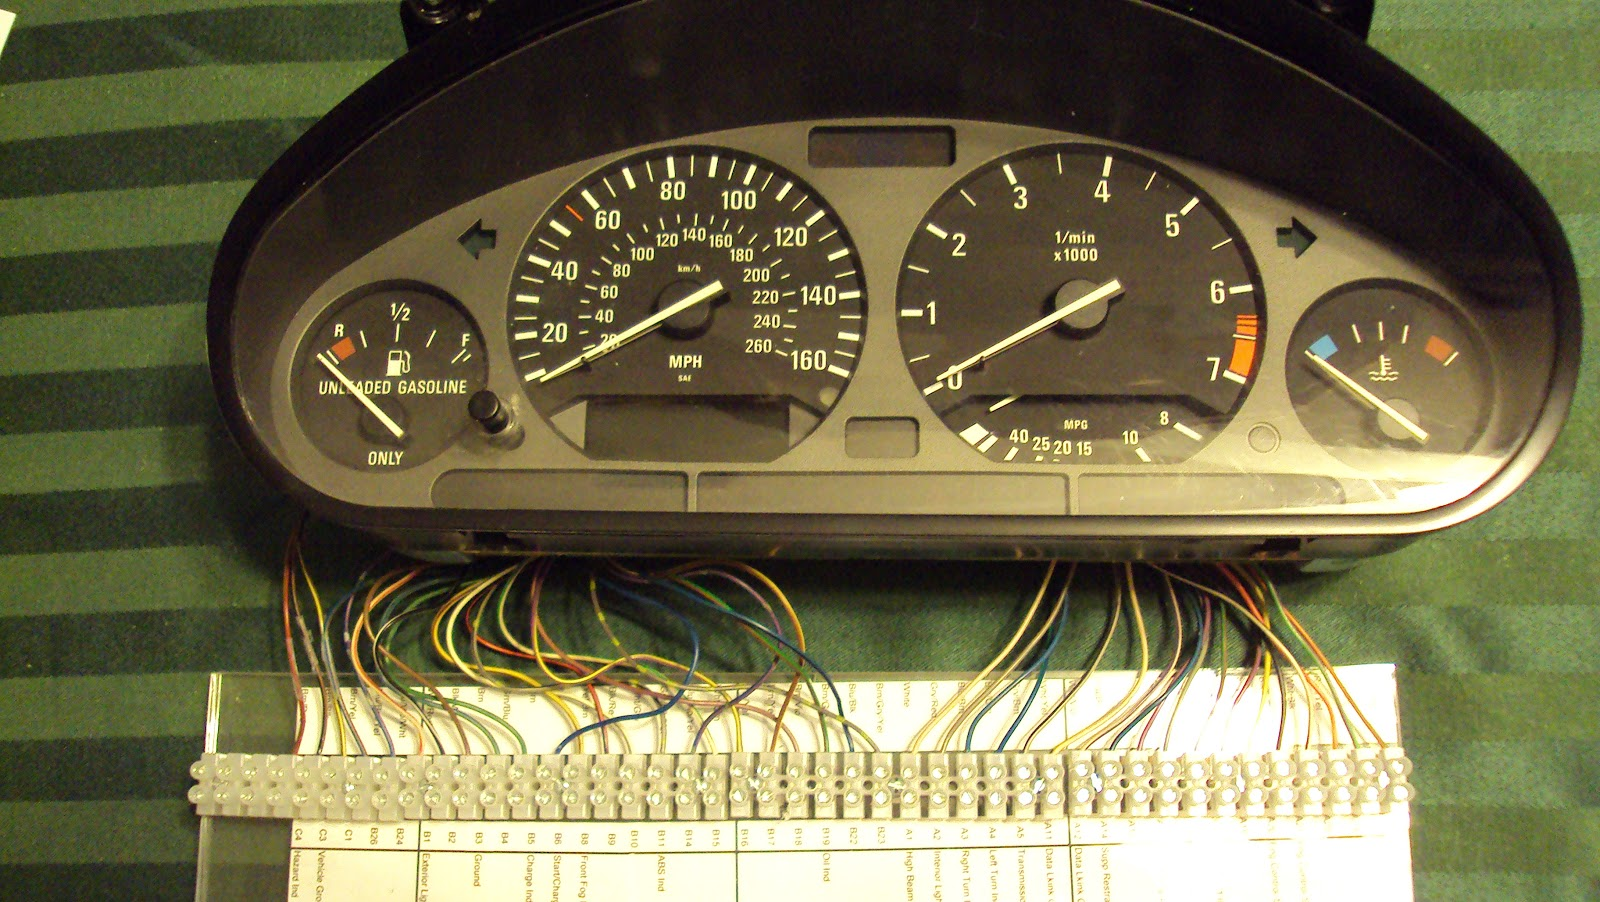 William's EV Bimmer 325i: 1992 BMW 325i Instrument Cluster 1.0William's EV Bimmer 325i - blogger